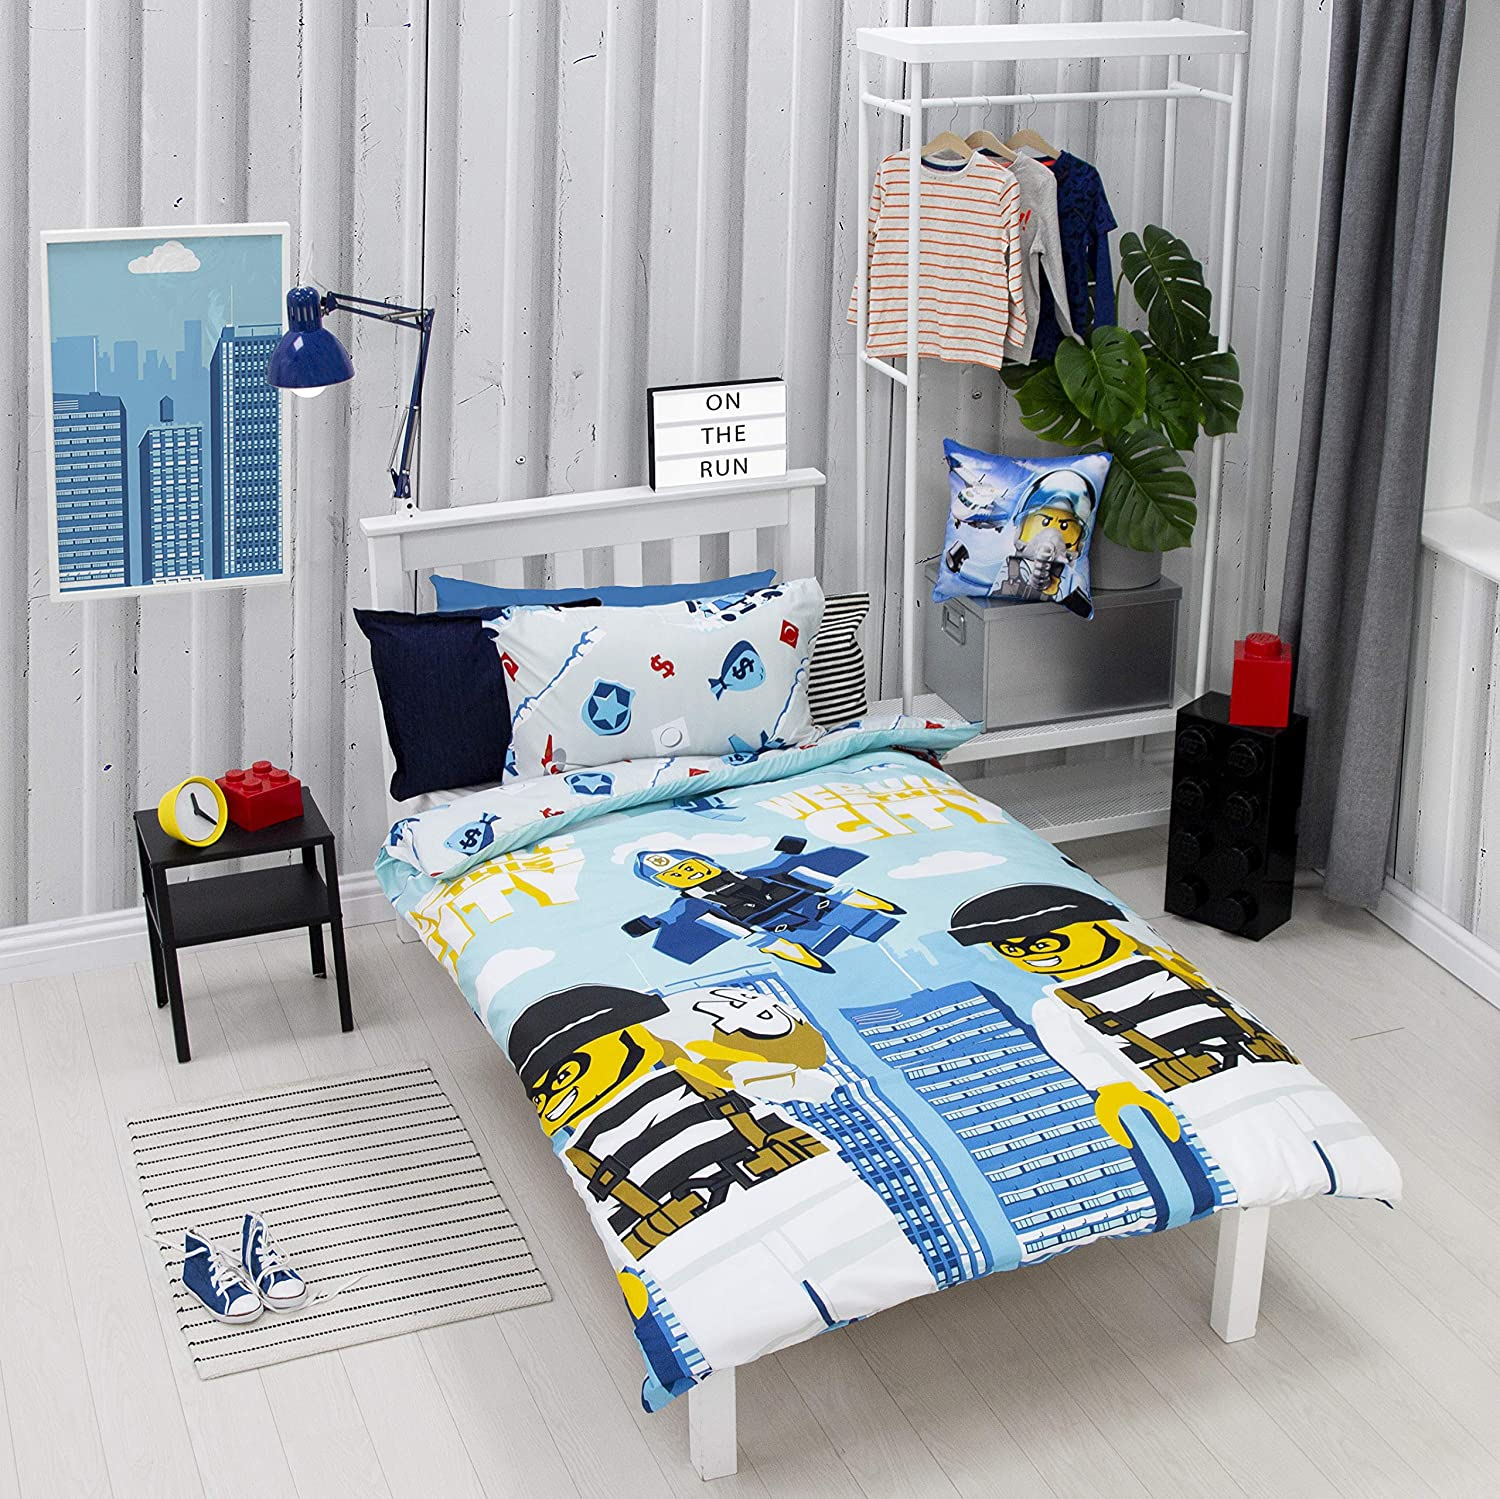 Lego City on The Run Reversible Rotary Single Bed Duvet Quilt Cover Set